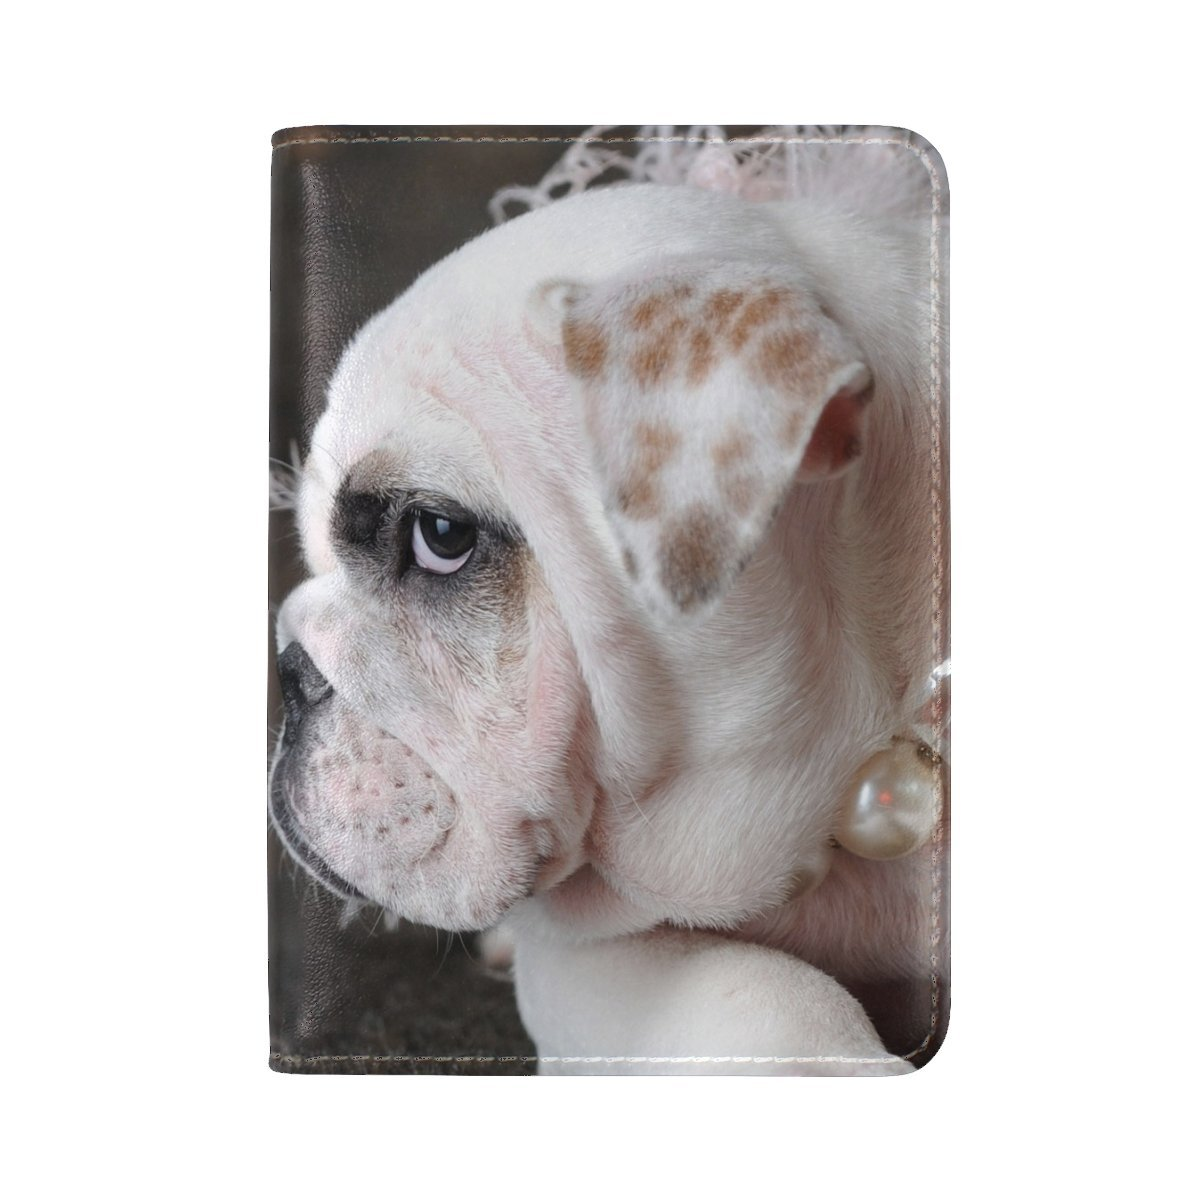 Dog Muzzle Beads Jewelry Leather Passport Holder Cover Case Travel One Pocket